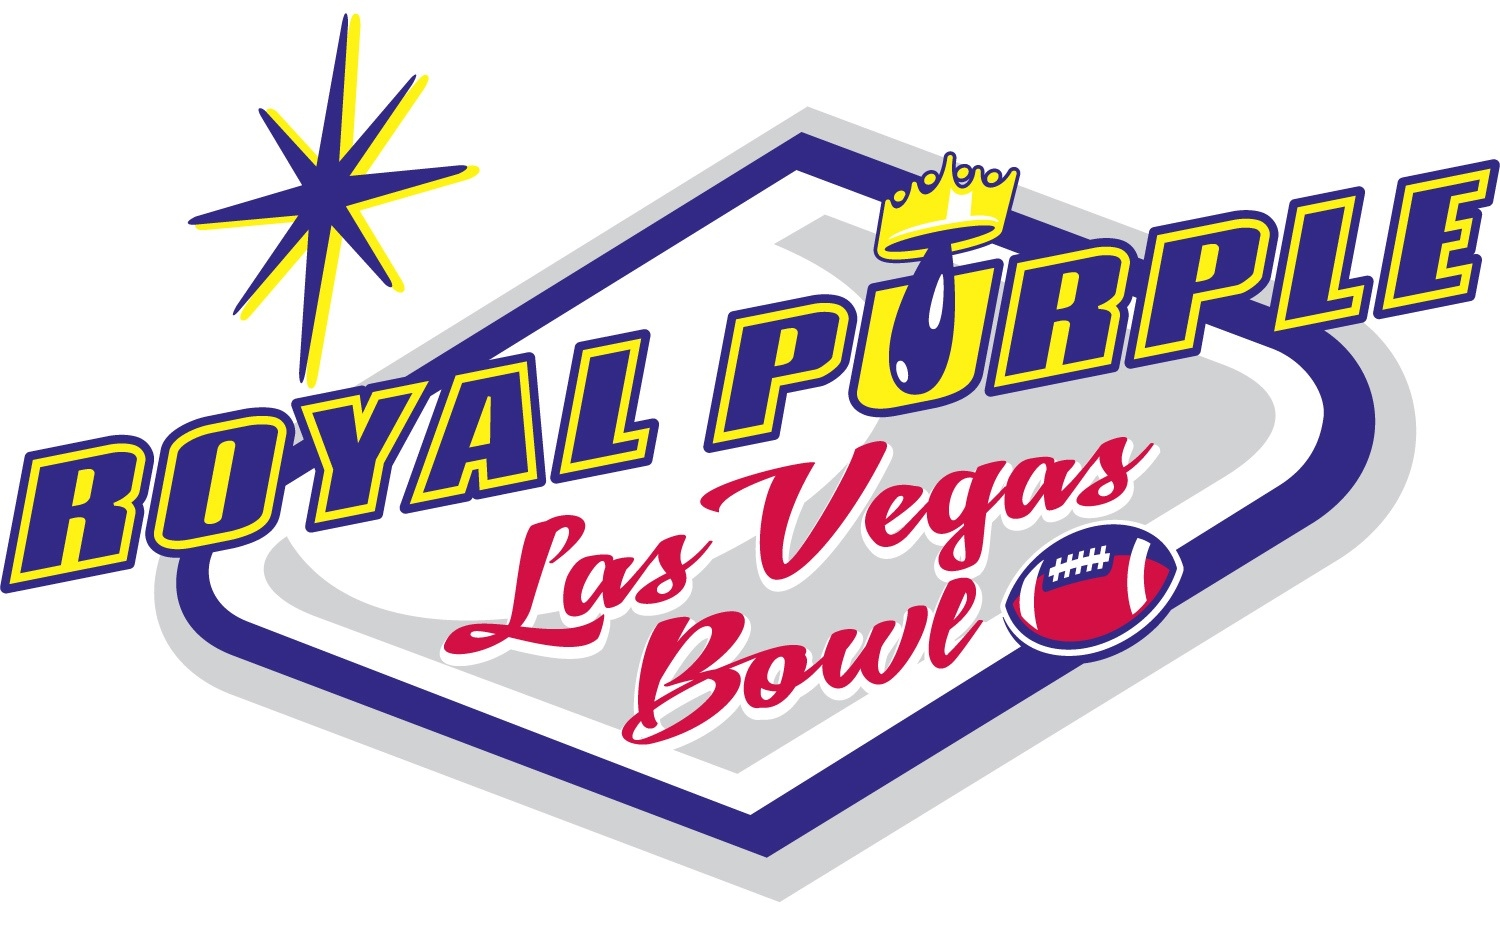 1500x925 Royal Purple Las Vegas Bowl Royal Purple